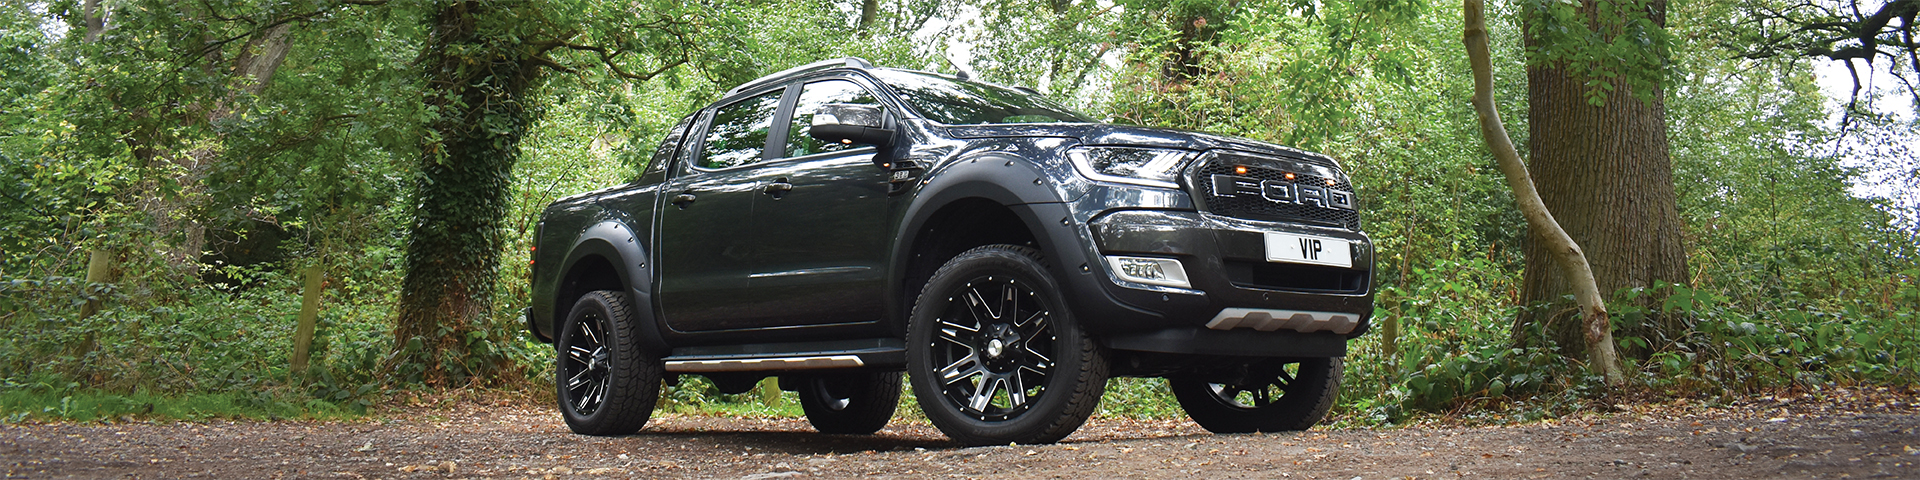 Ford Ranger Tuning and Styling-01-3.jpg